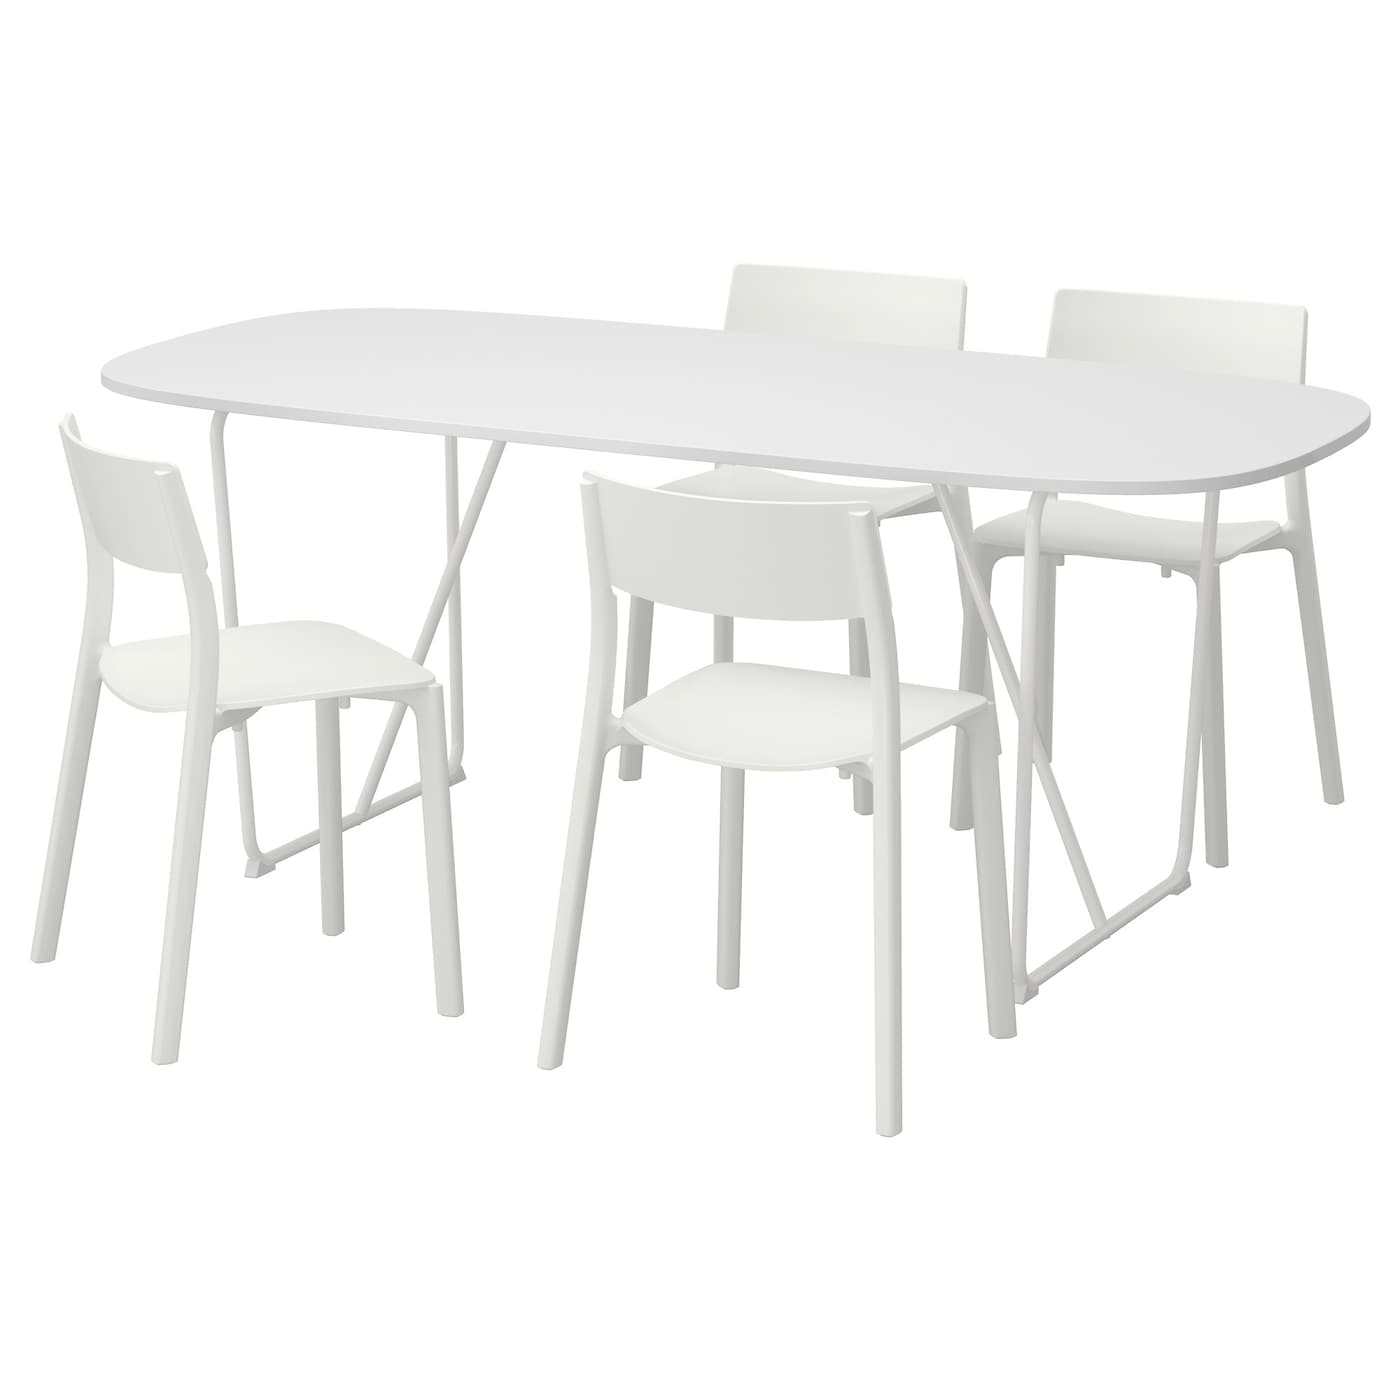 oppeby backaryd janinge table and 4 chairs white white 185 cm ikea